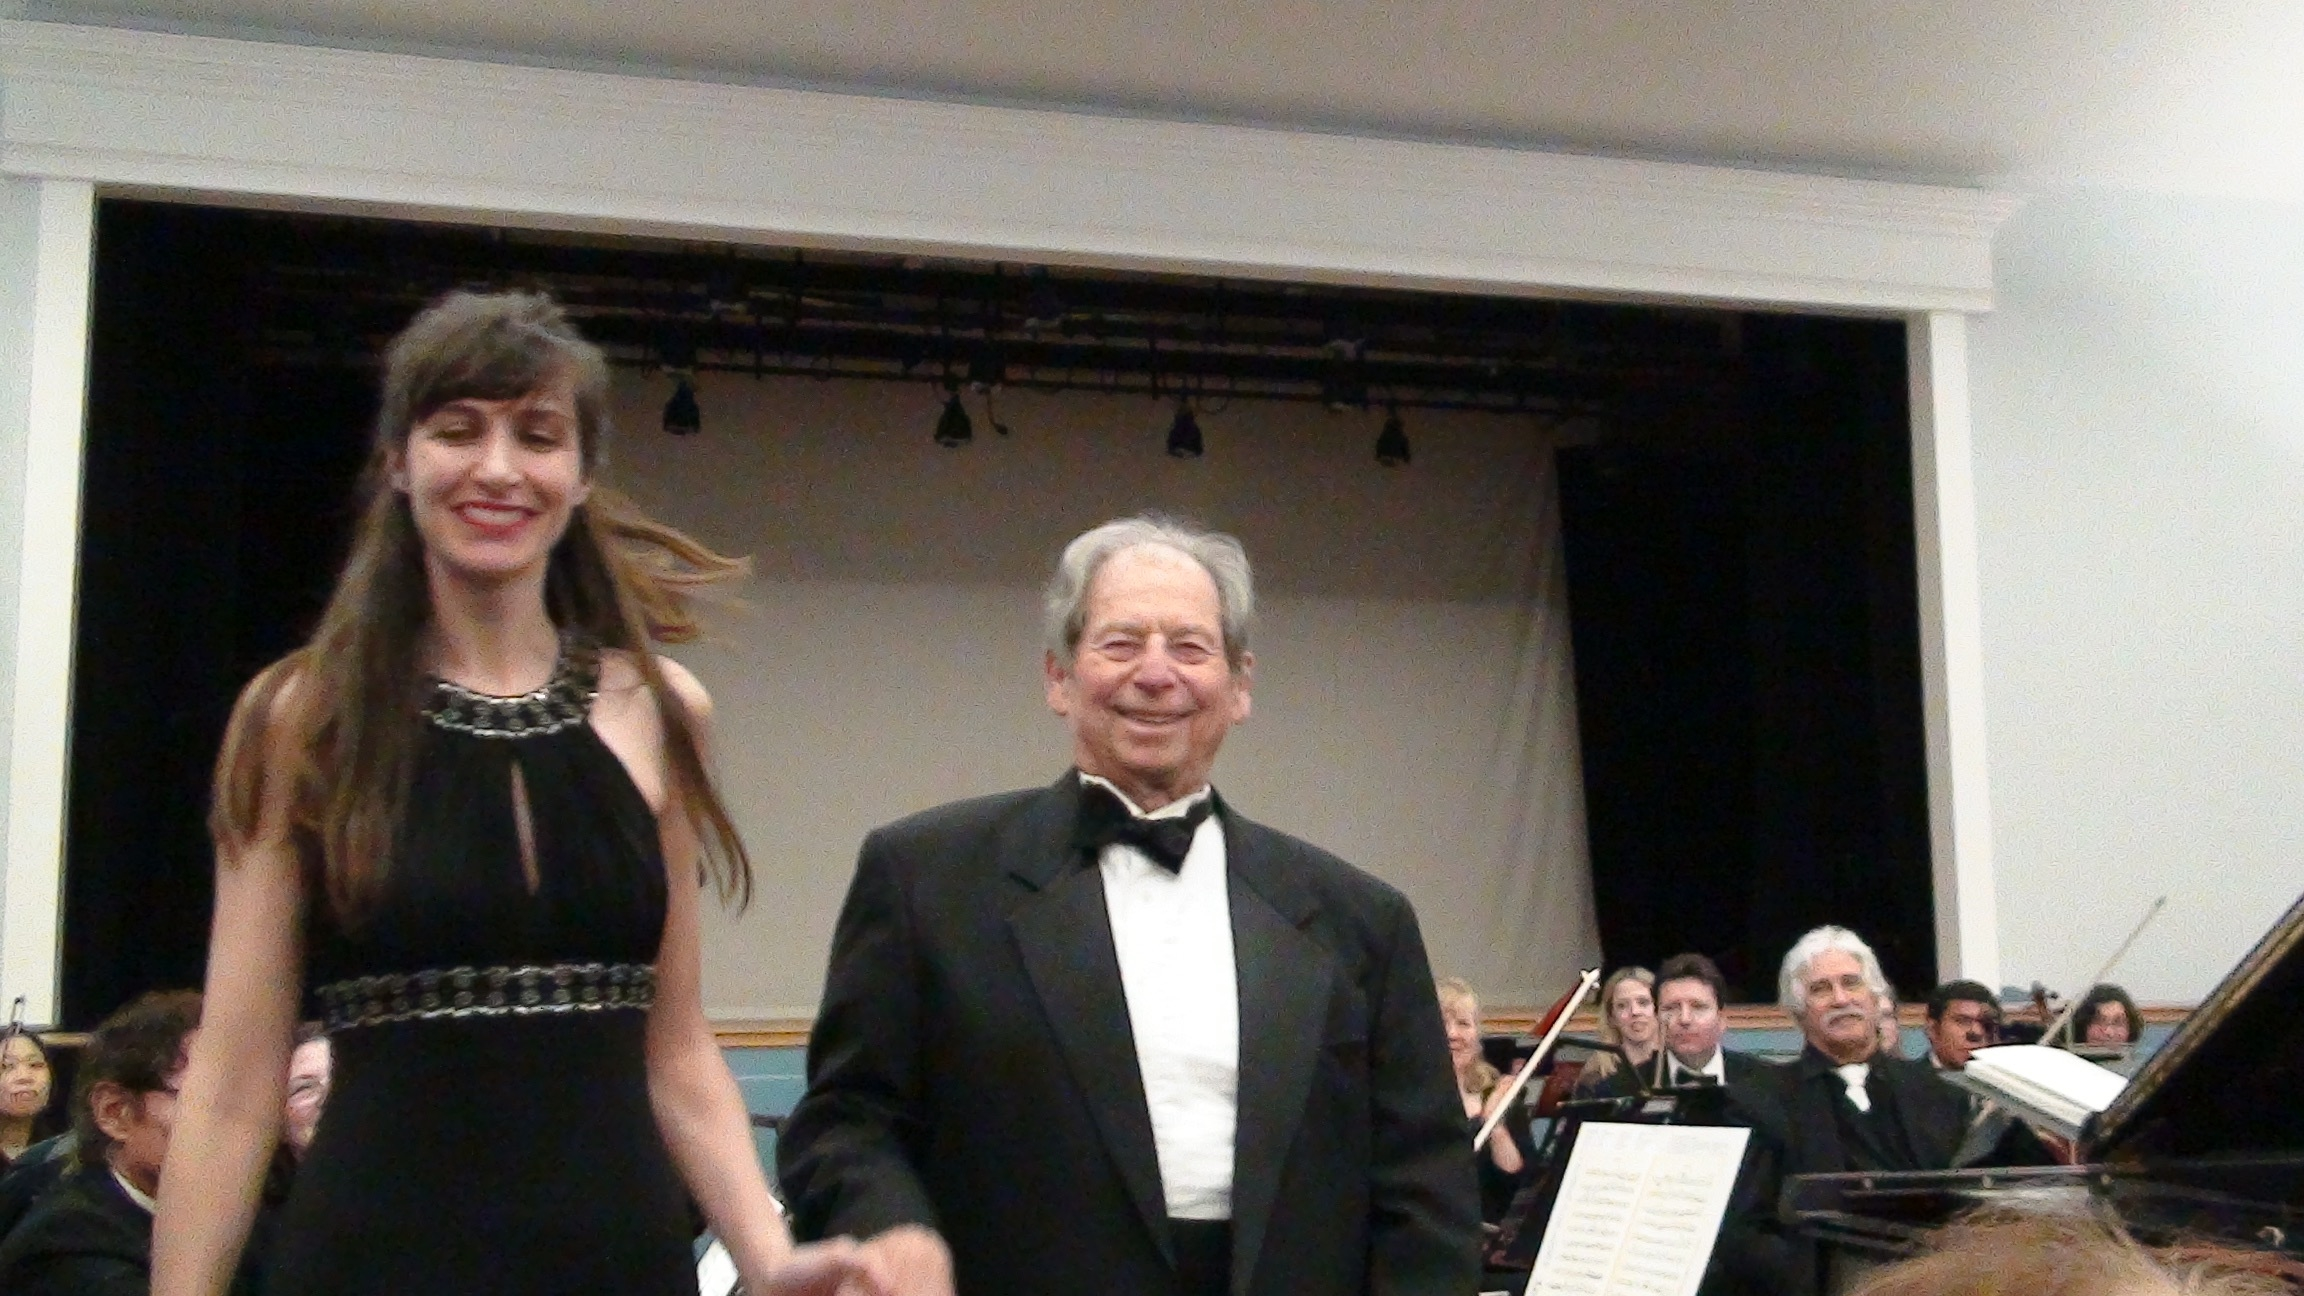 With conductor Joel B. Lish after Beethoven Piano Concerto N 5